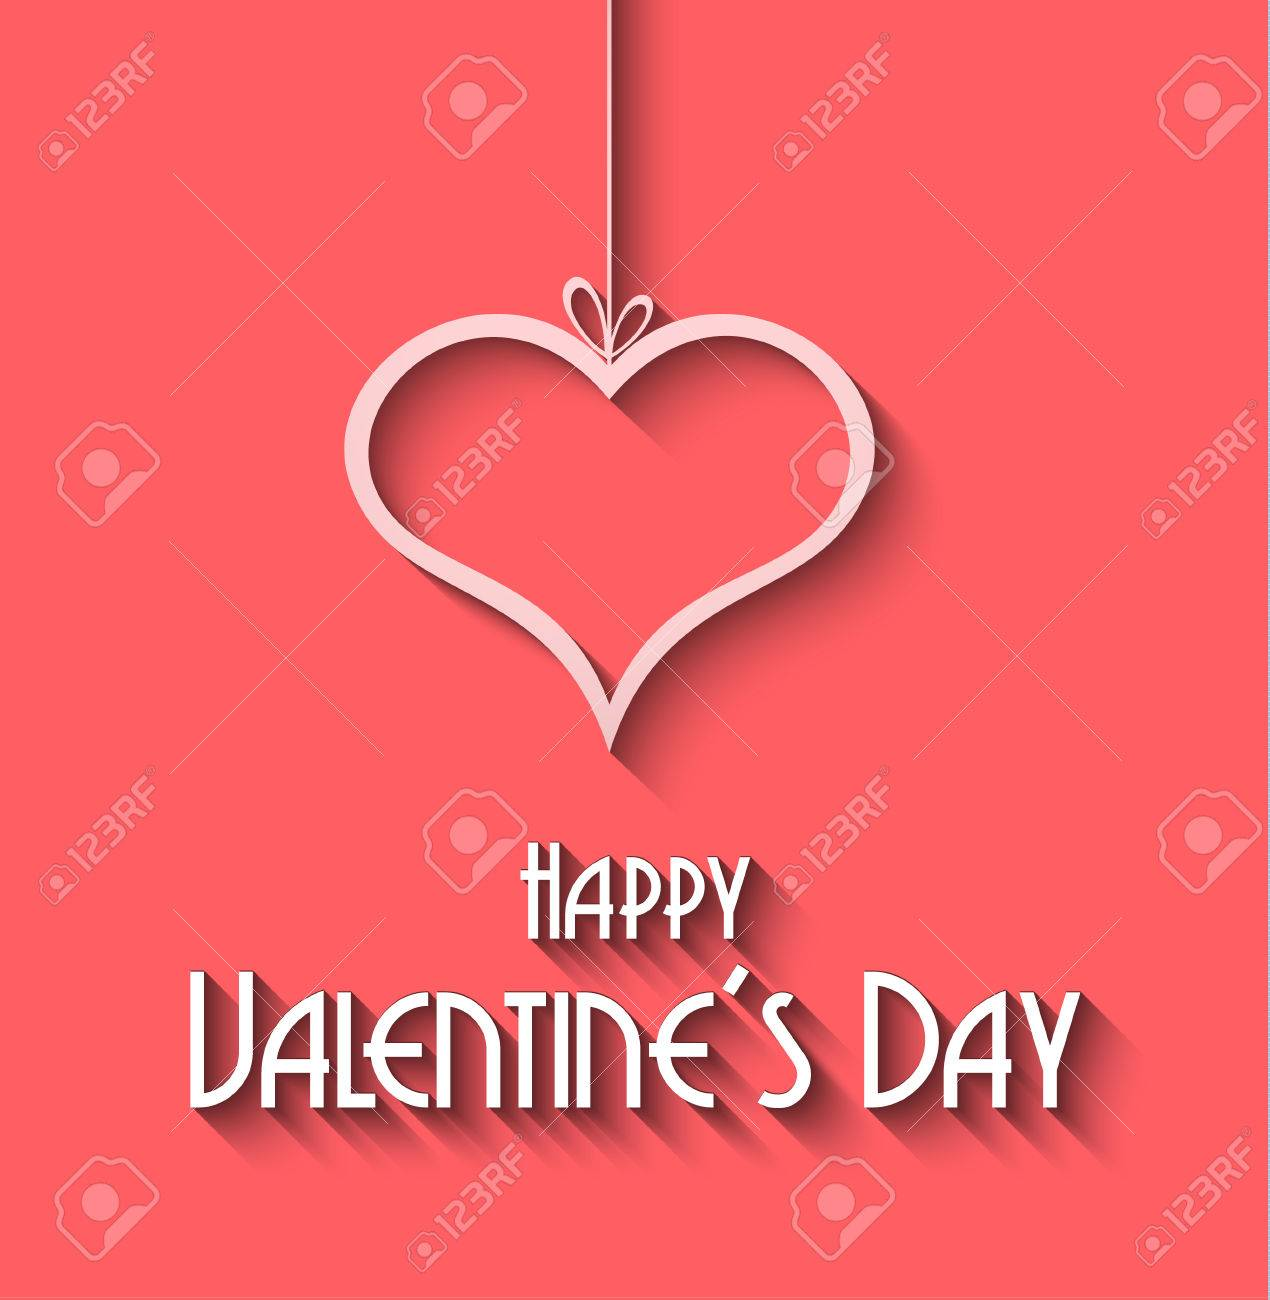 clipart valentines day.html